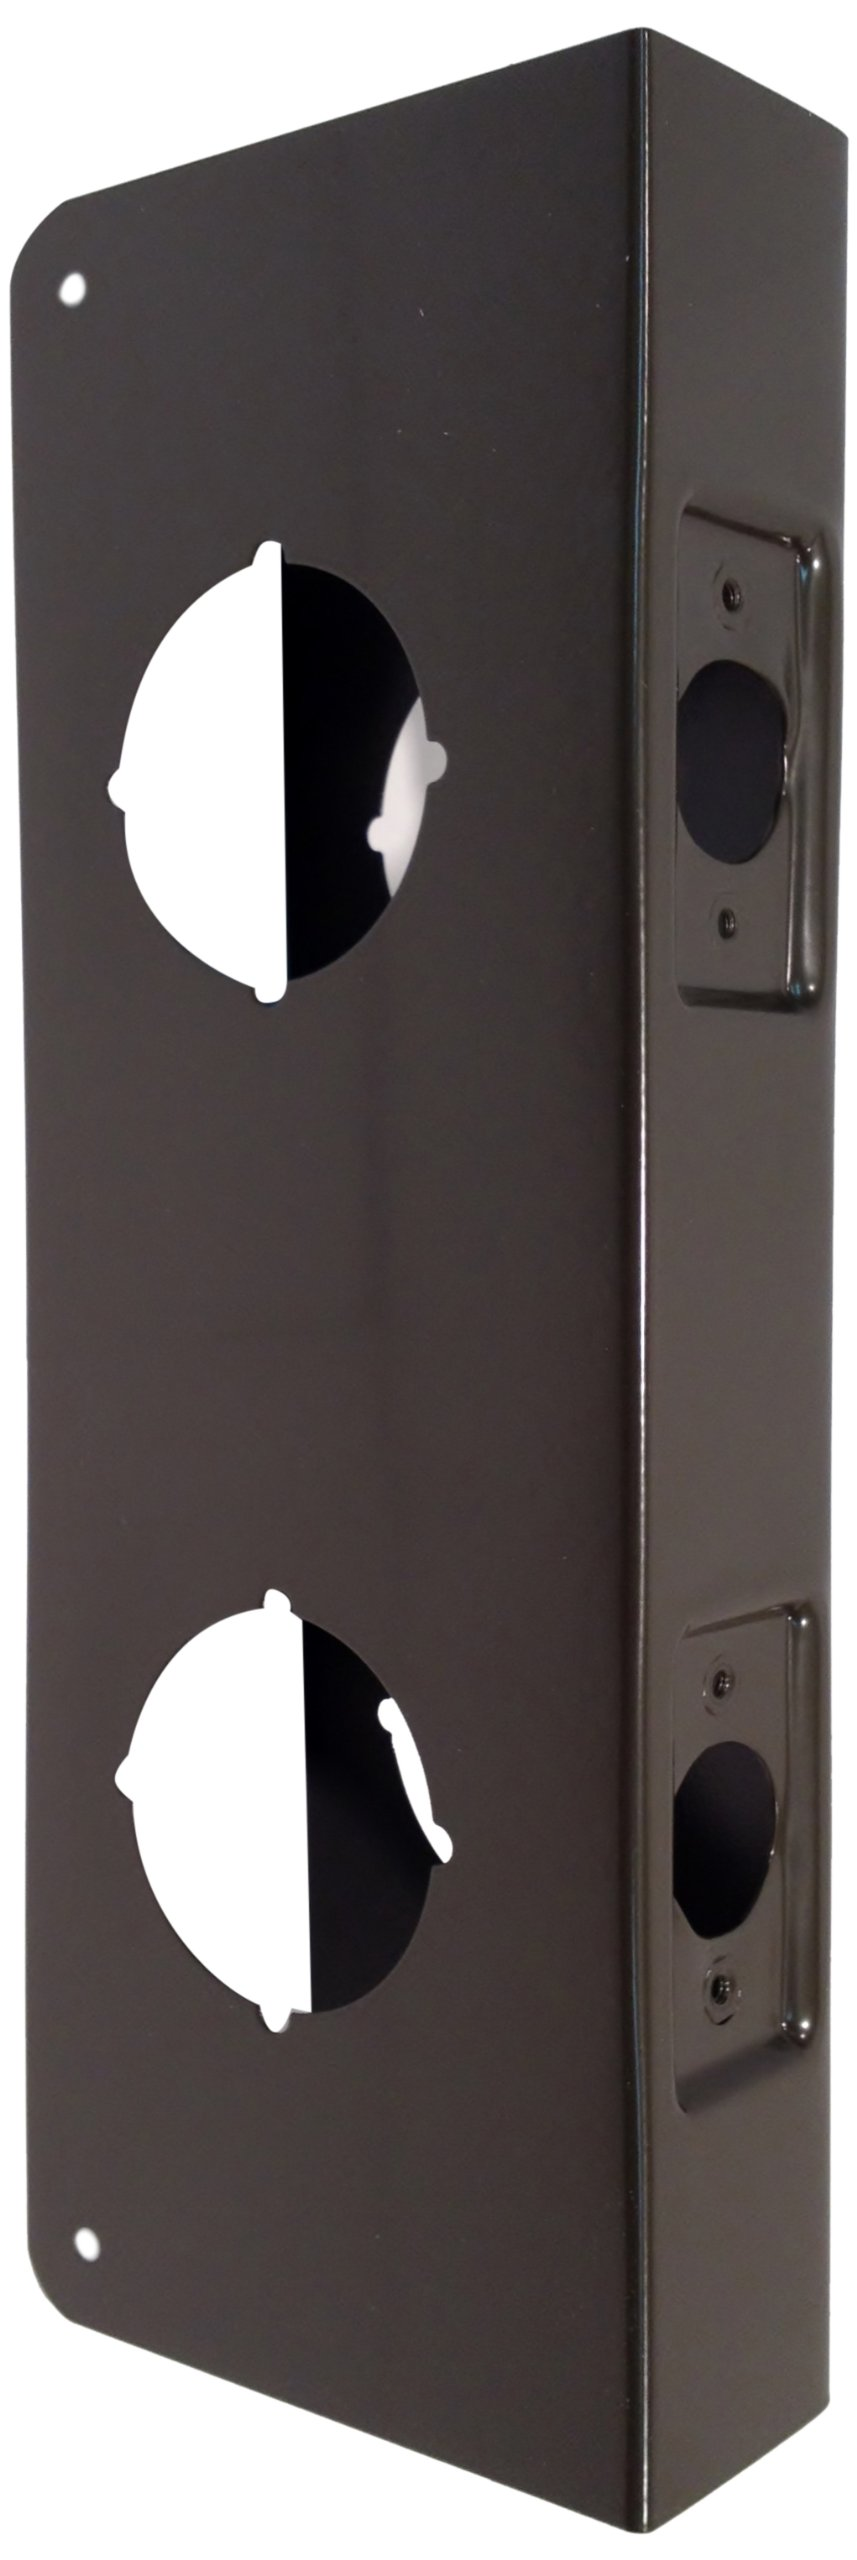 Don-Jo 256-CW 22 Gauge Stainless Steel Classic Wrap-Around Plate, Oil Rubbed Bronze Finish, 4'' Width x 12'' Height, 2-3/8'' Backset, 1-3/4'' Door Size, For Double Lock Combination Locksets (Pack of 10)